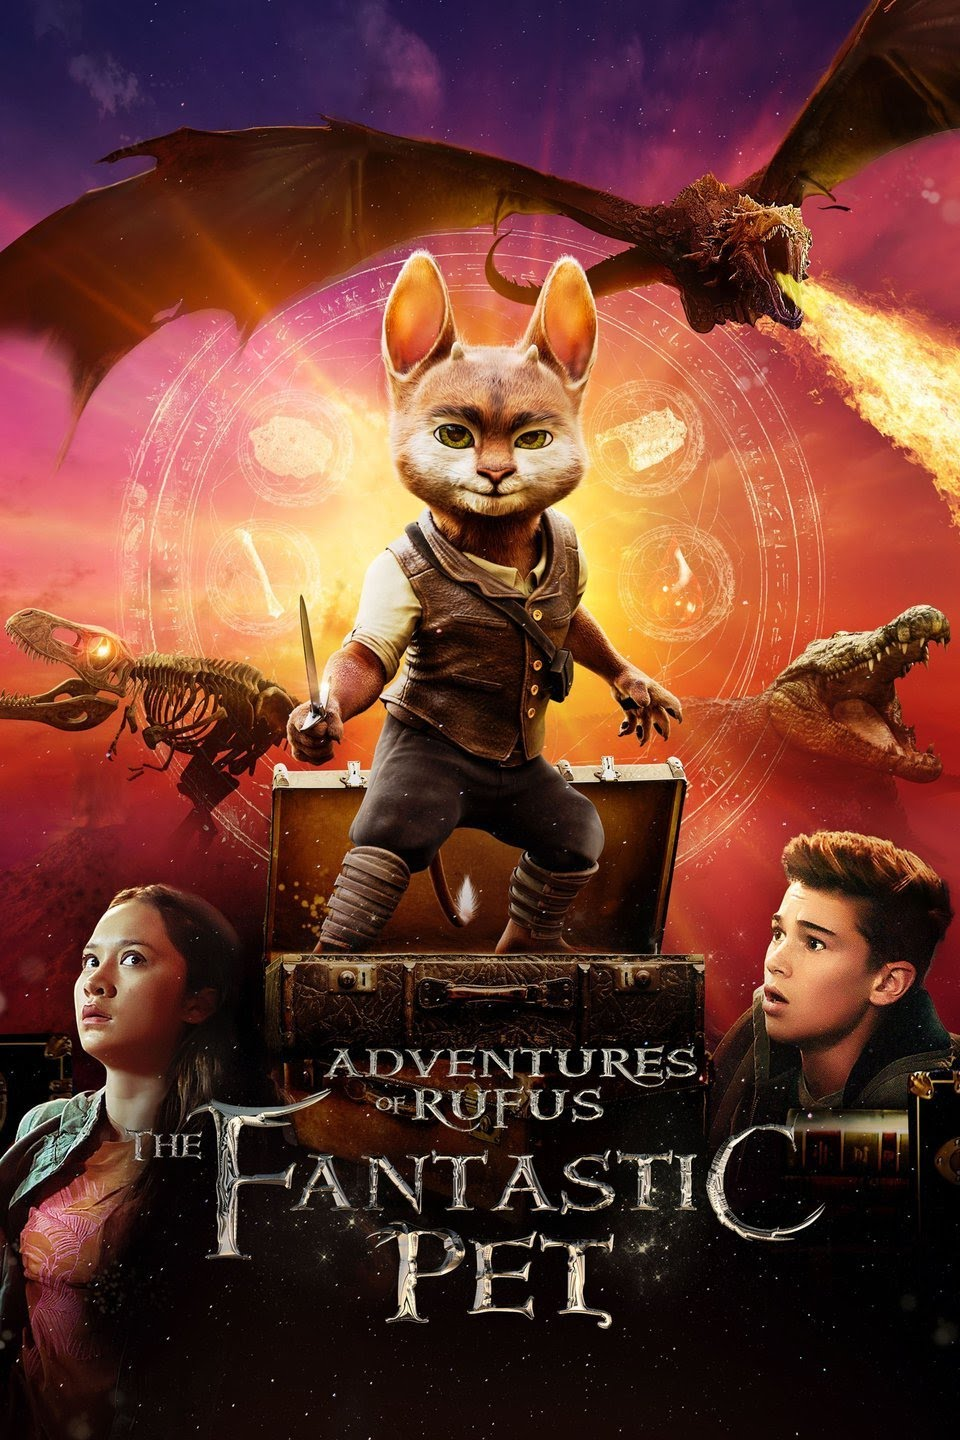 Adventures of Rufus: The Fantastic Pet (2020)